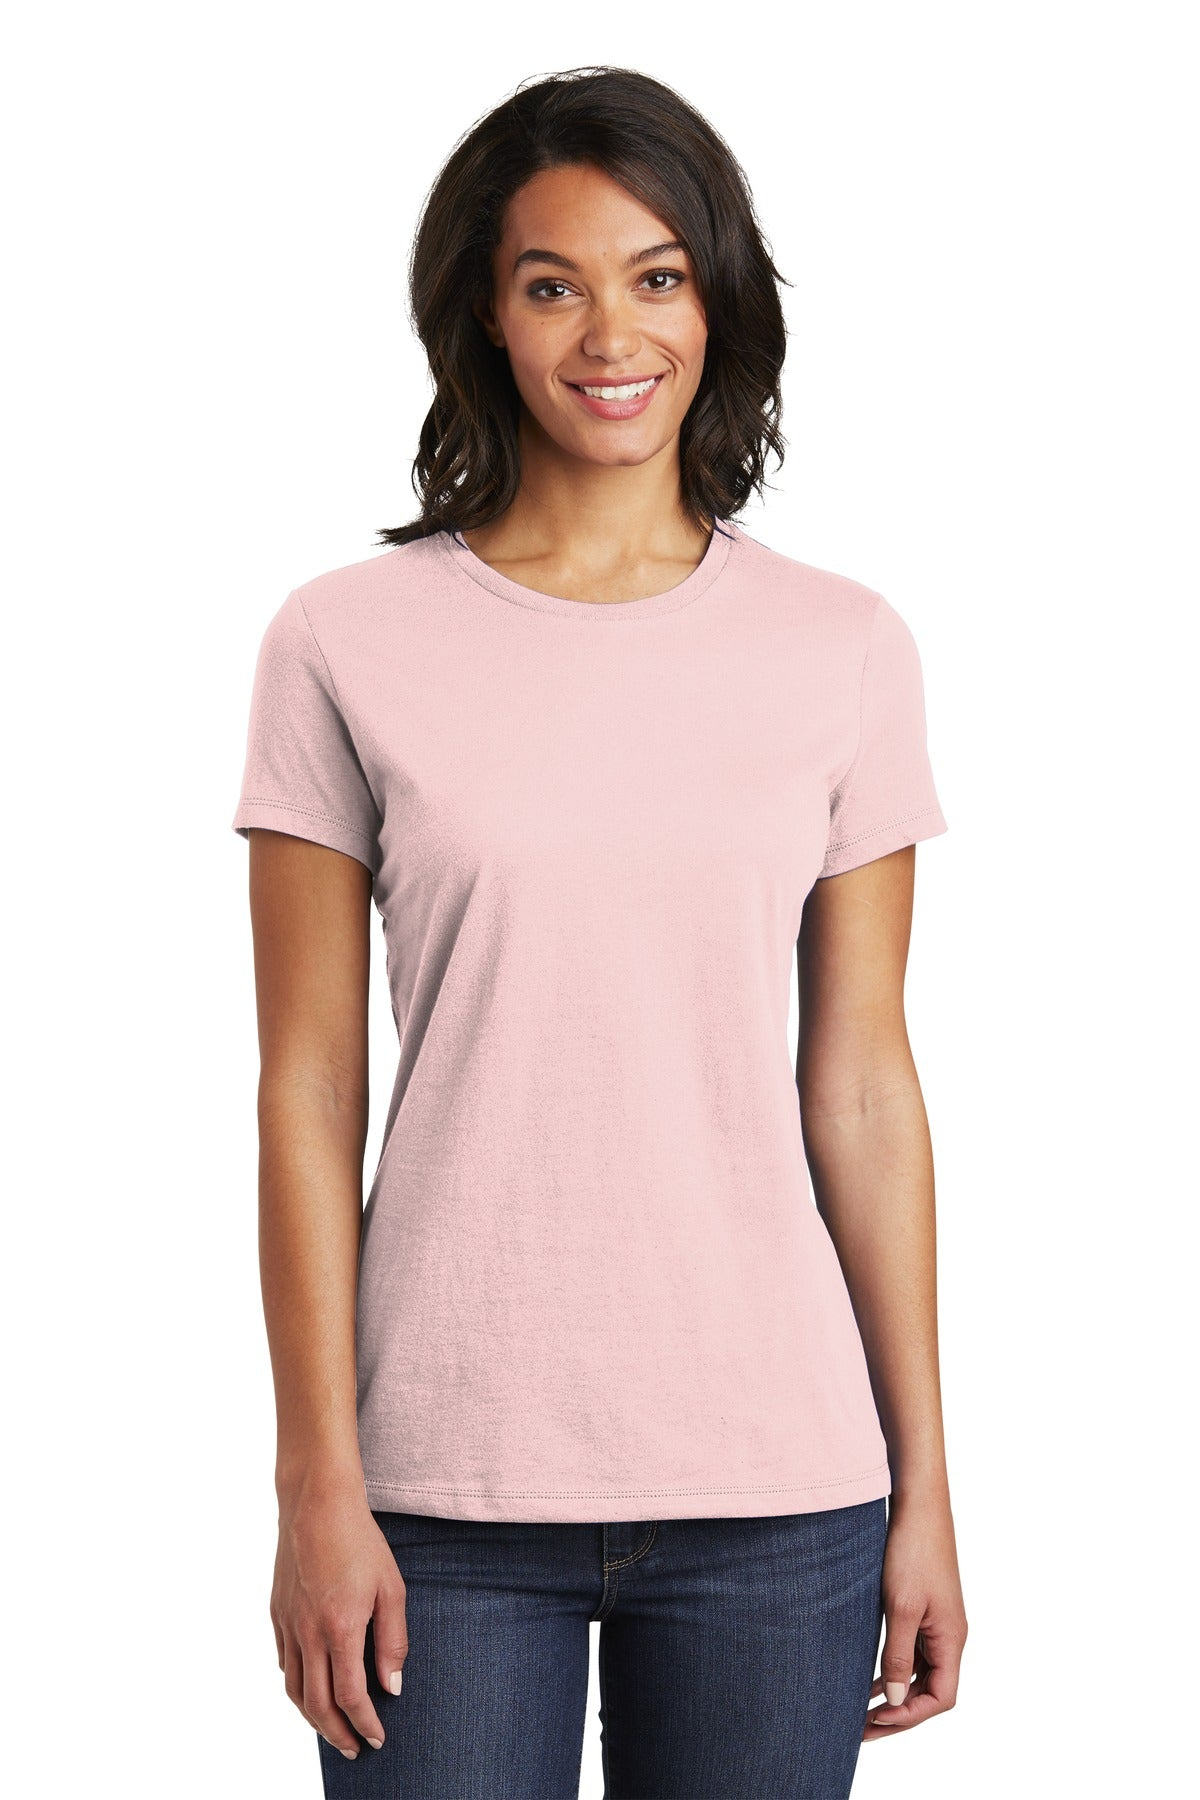 District DT6002 Women's Very Important Tee - Dusty Lavender - HIT A Double